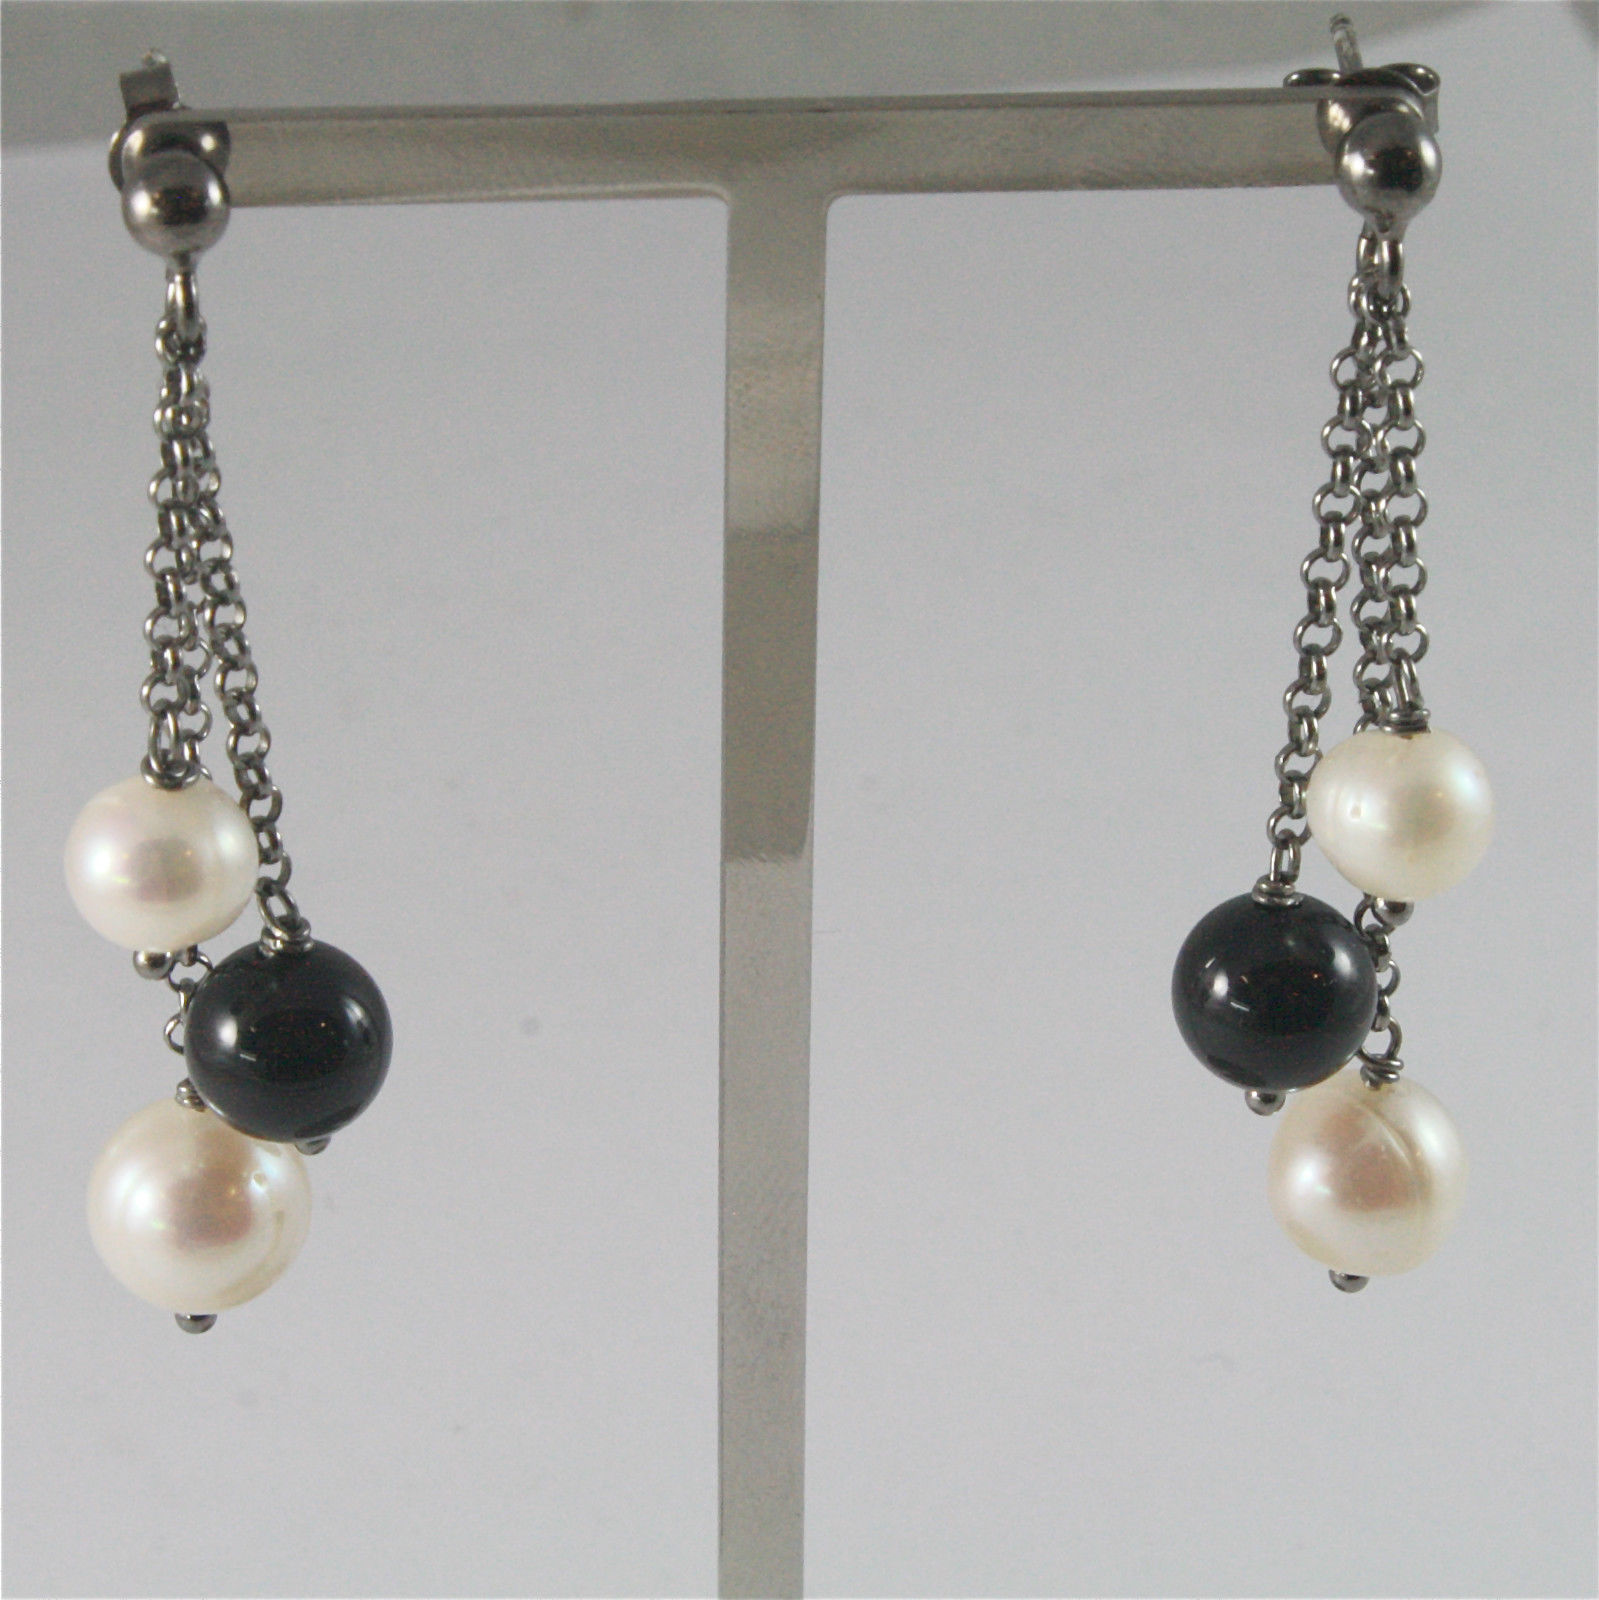 .925 BURNISHED SILVER EARRINGS WITH WHITE FW PEARLS AND BLACK ONYX 1.97 INCH